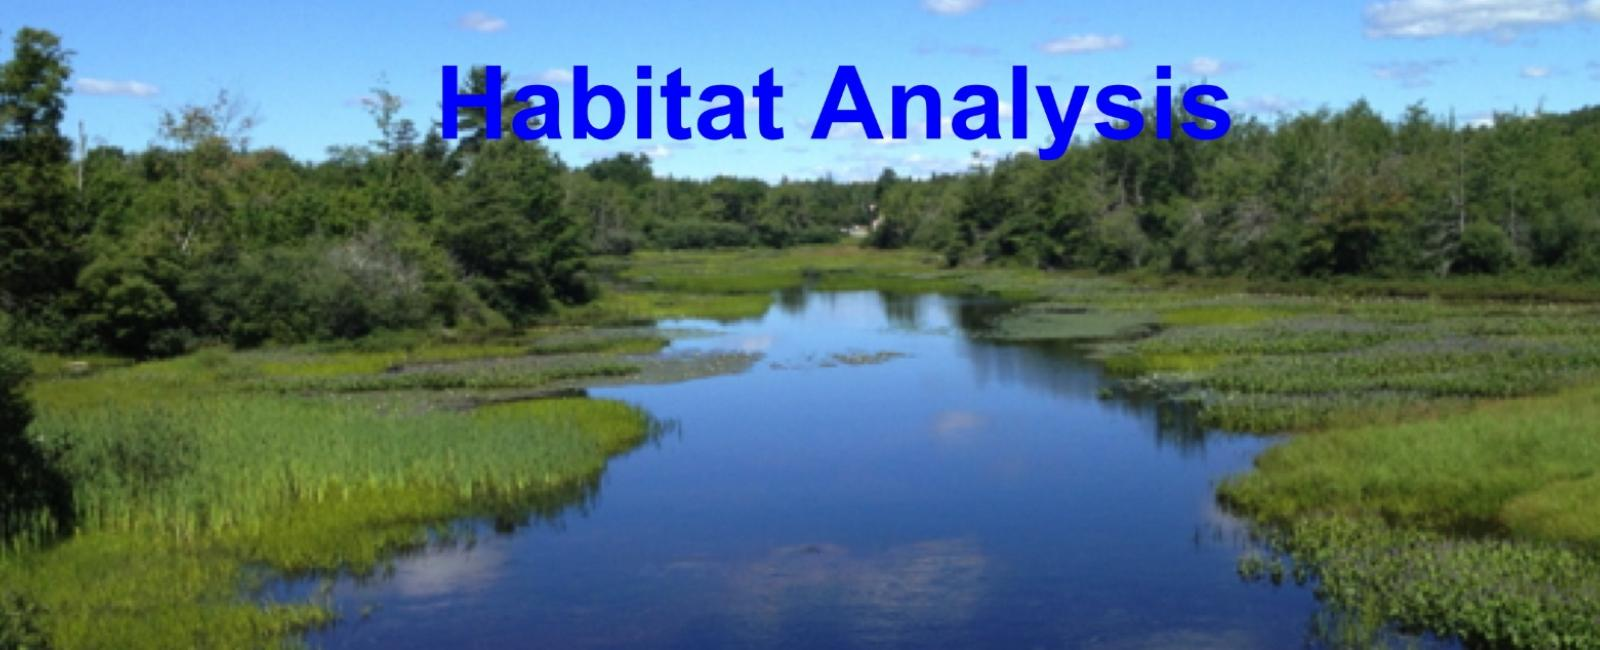 Habitat Analysis - stream through a bog